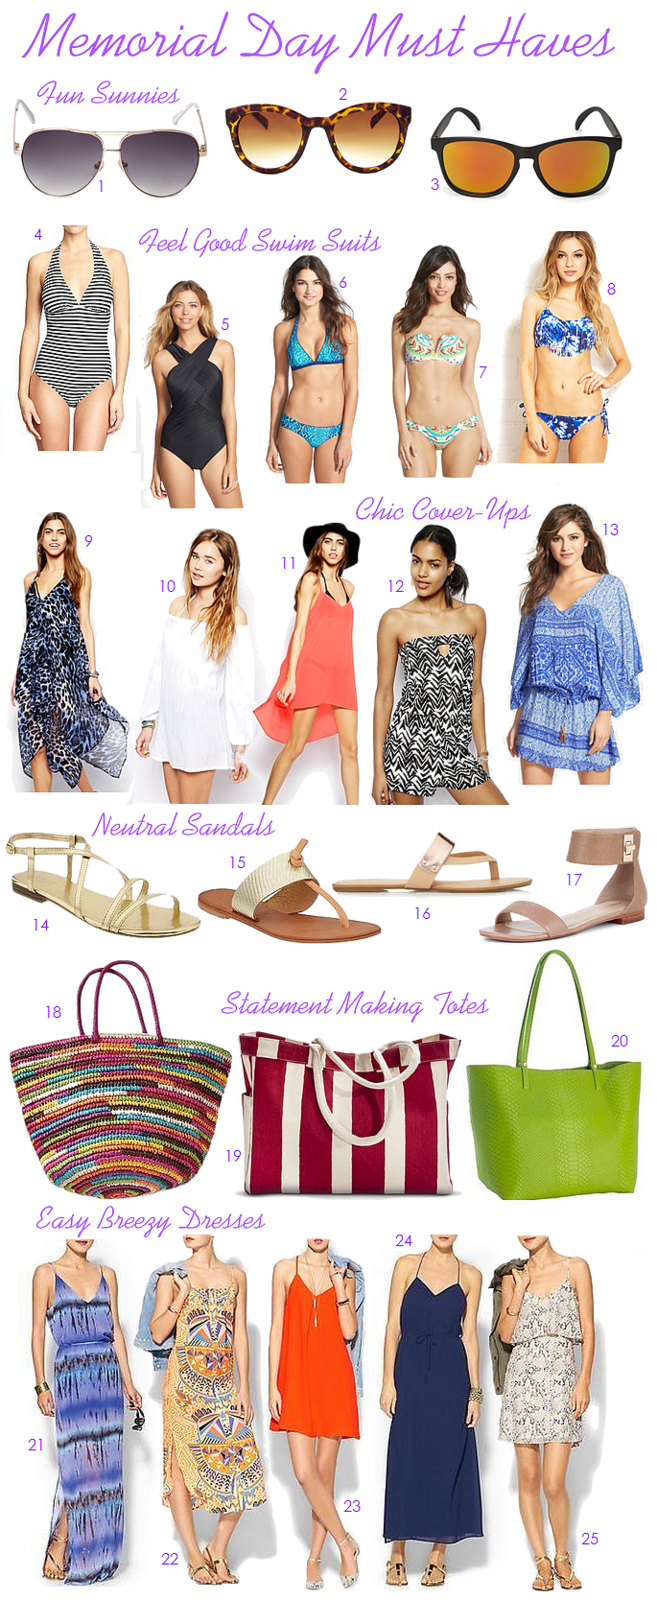 Memorial Day Must Haves!